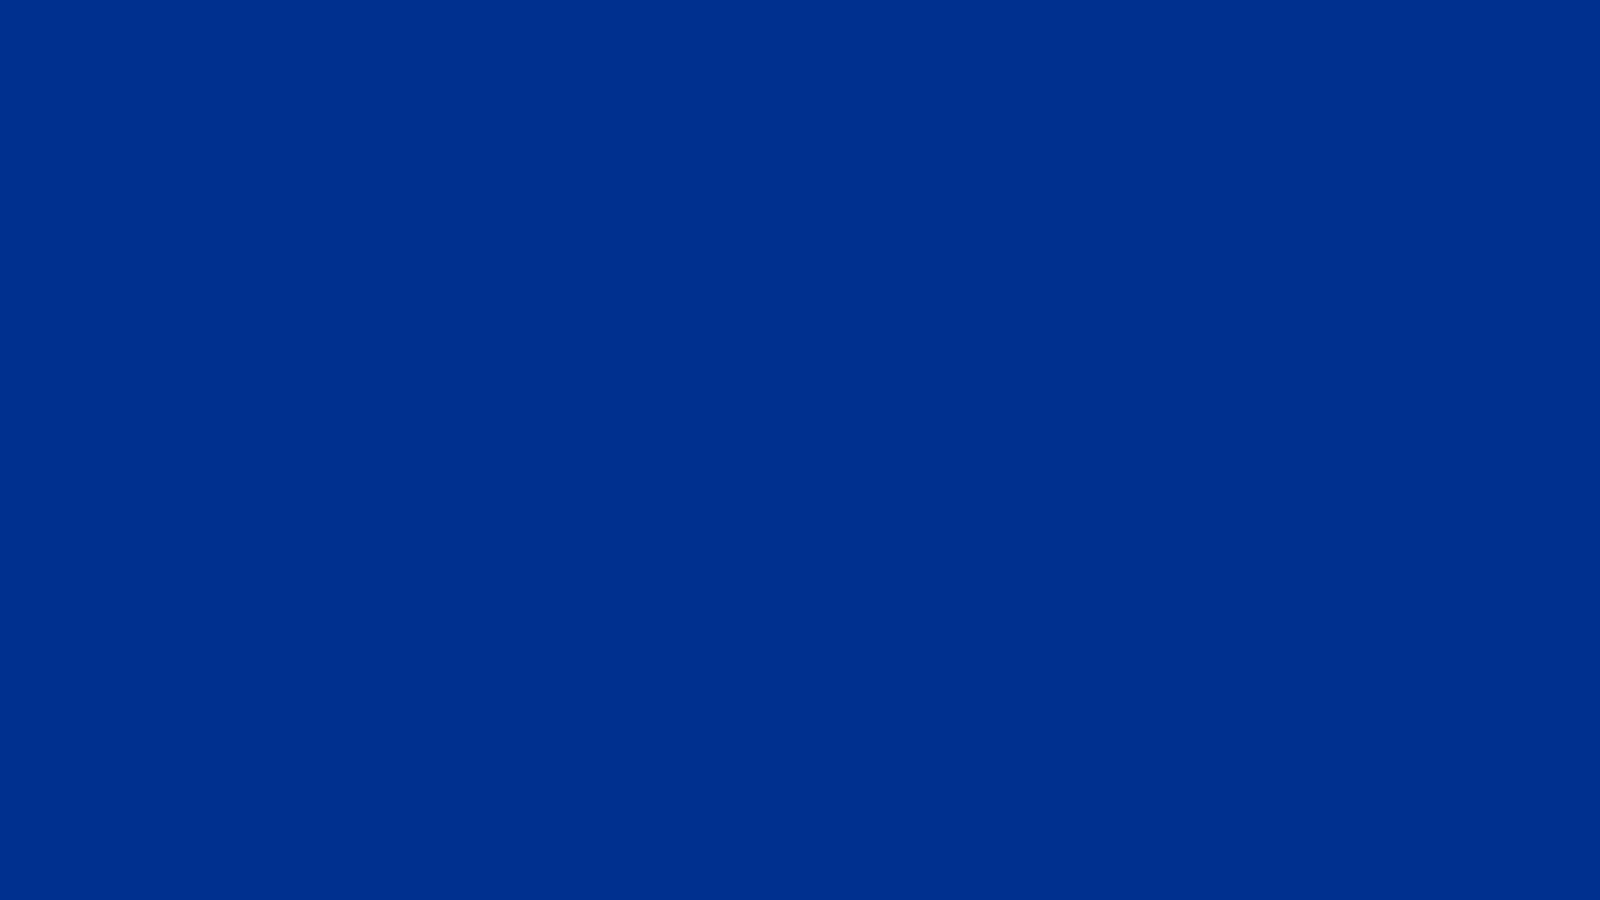 1600x900 air force dark blue solid color background